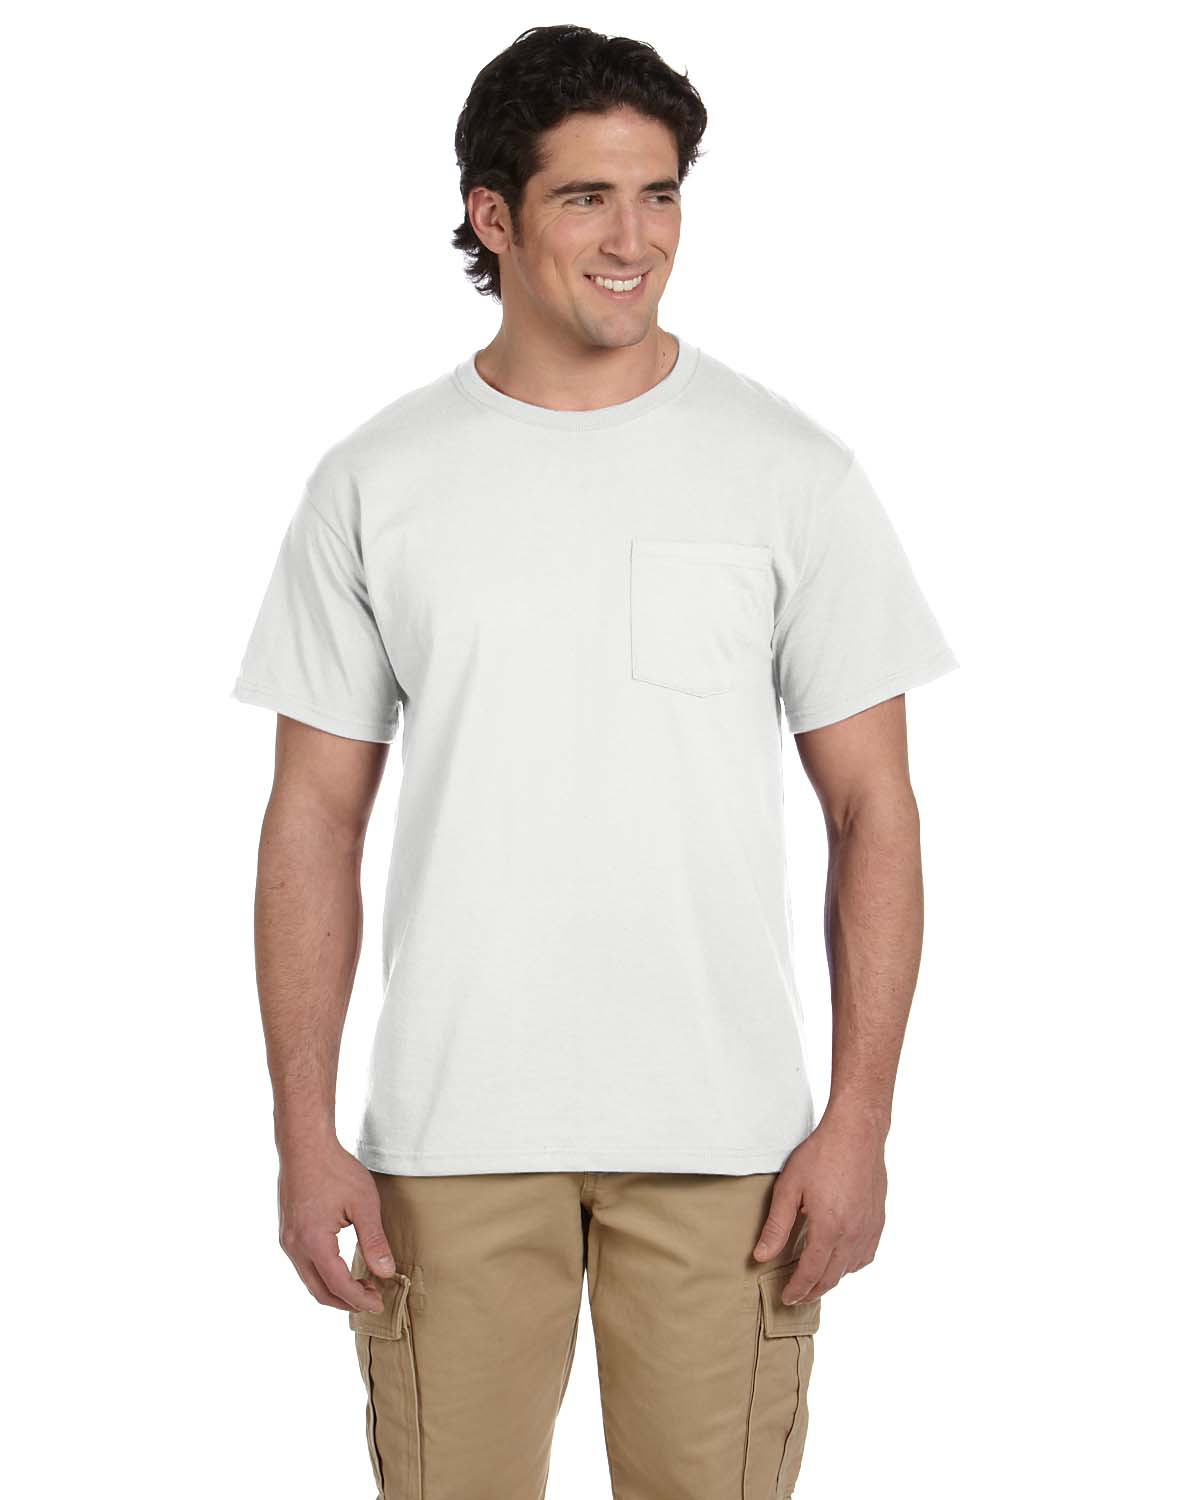 Adult 5.6 oz. DRI-POWER® ACTIVE Pocket T-Shirt